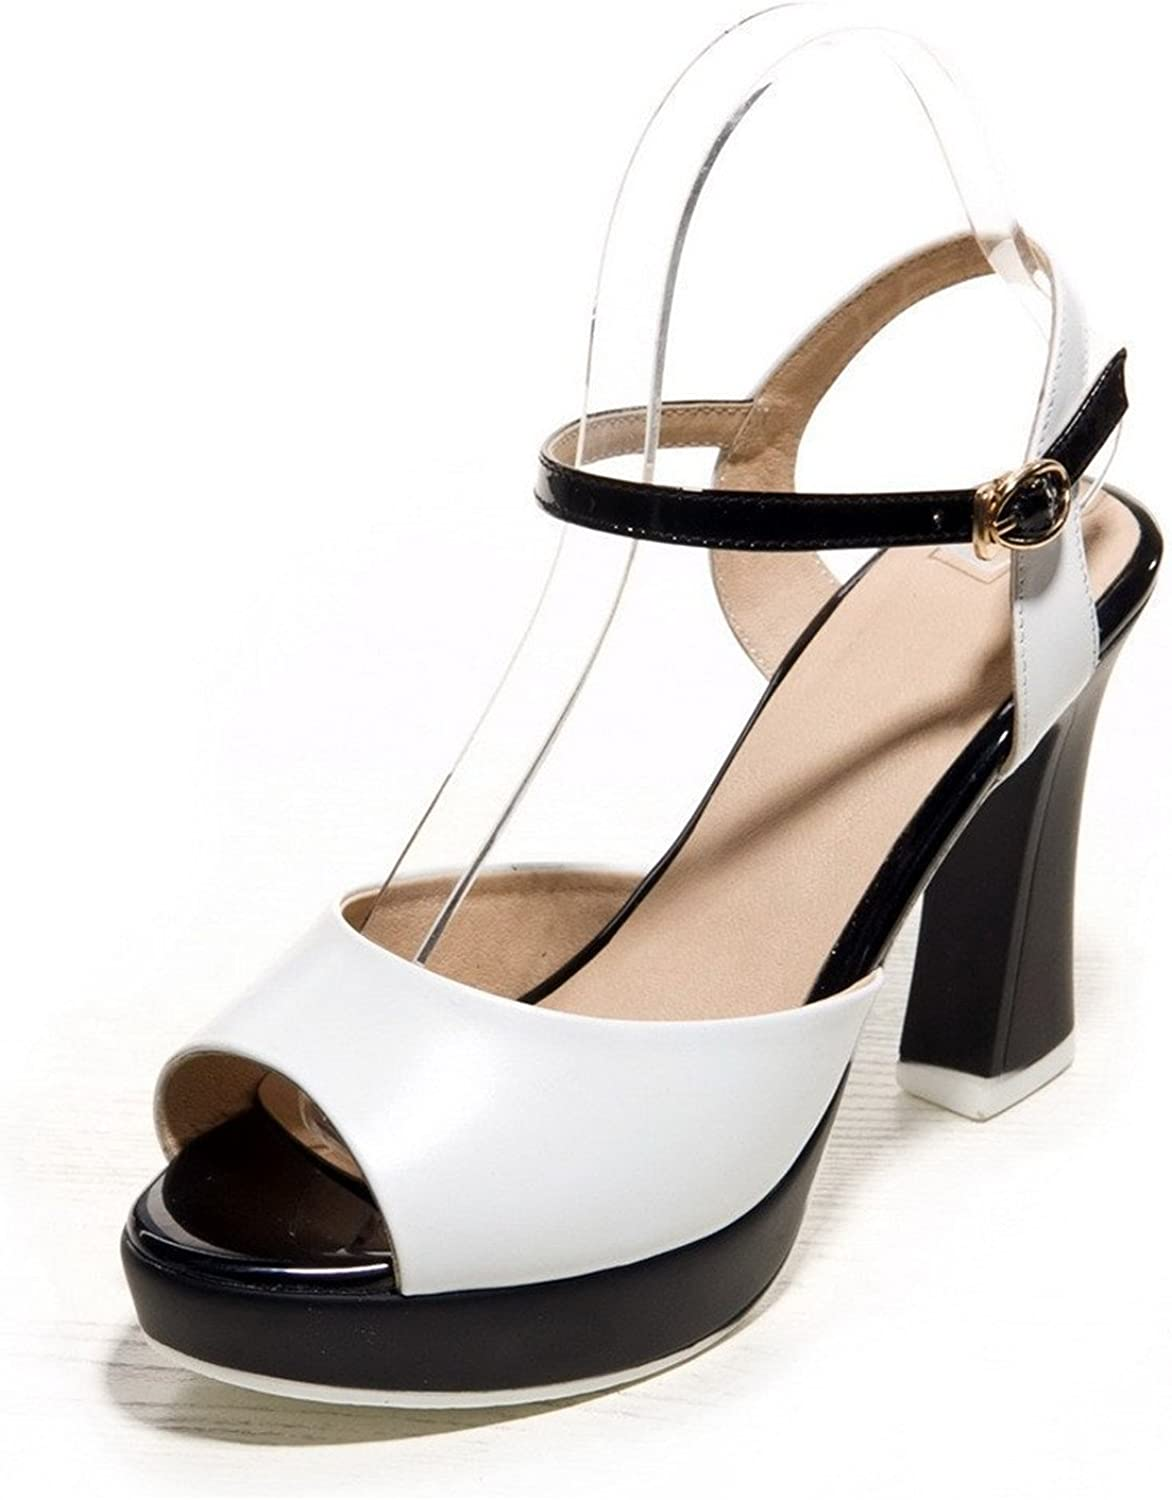 Xiaoyouny Fashionable Women's Soft Material Buckle Peep Toe High-Heels Assorted color Sandals